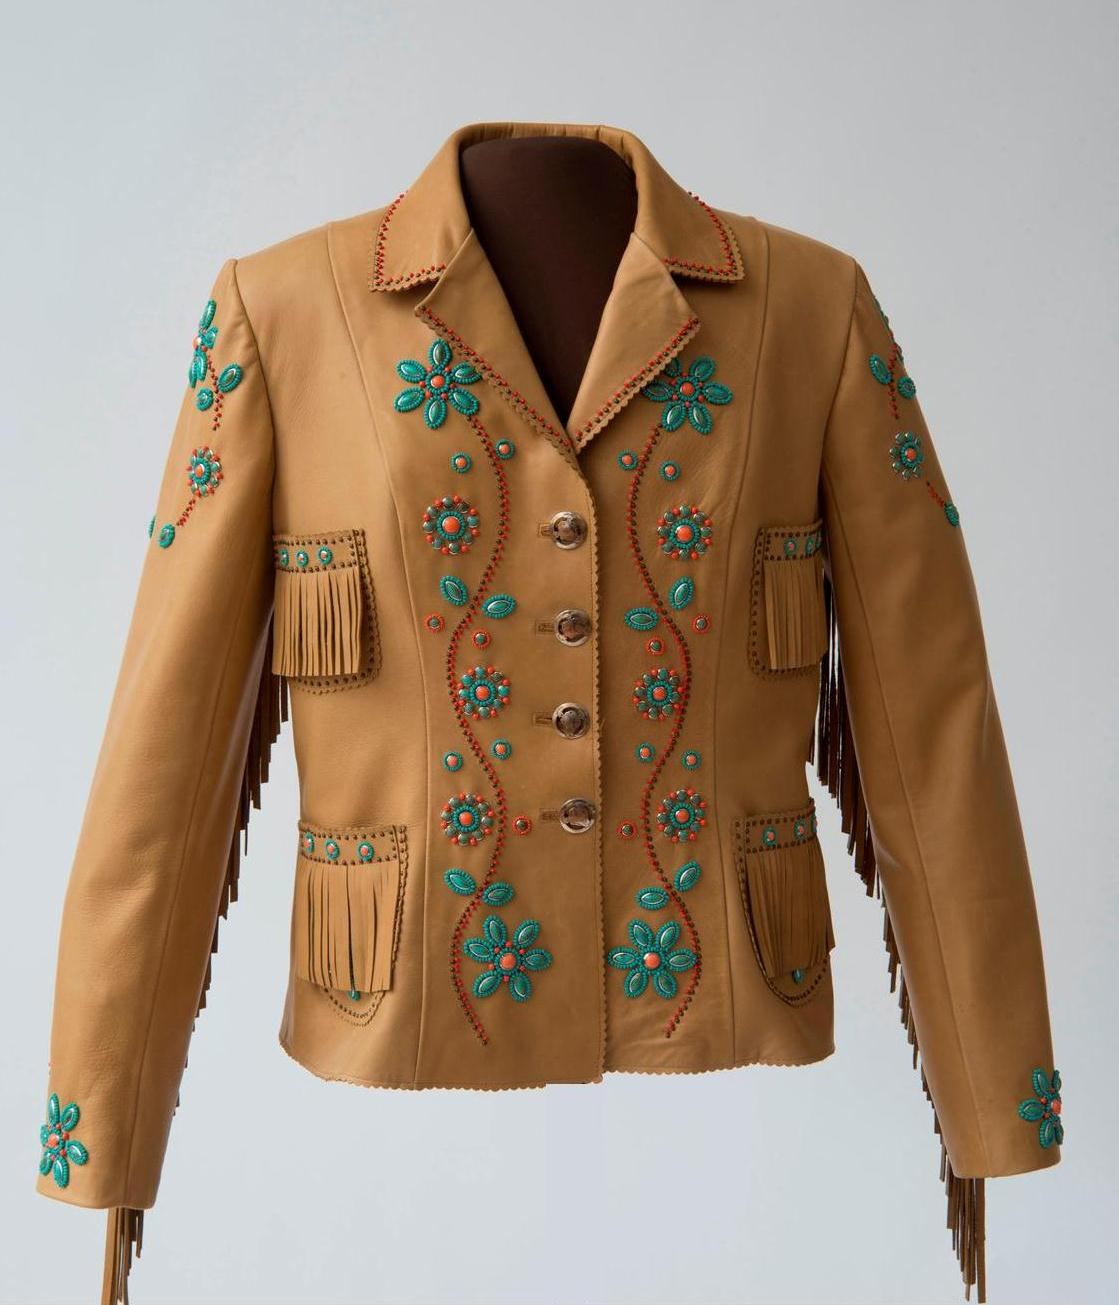 Life In Wyoming >> Buffalo Bill Center of the West raffles this Buffalo Bill-inspired jacket